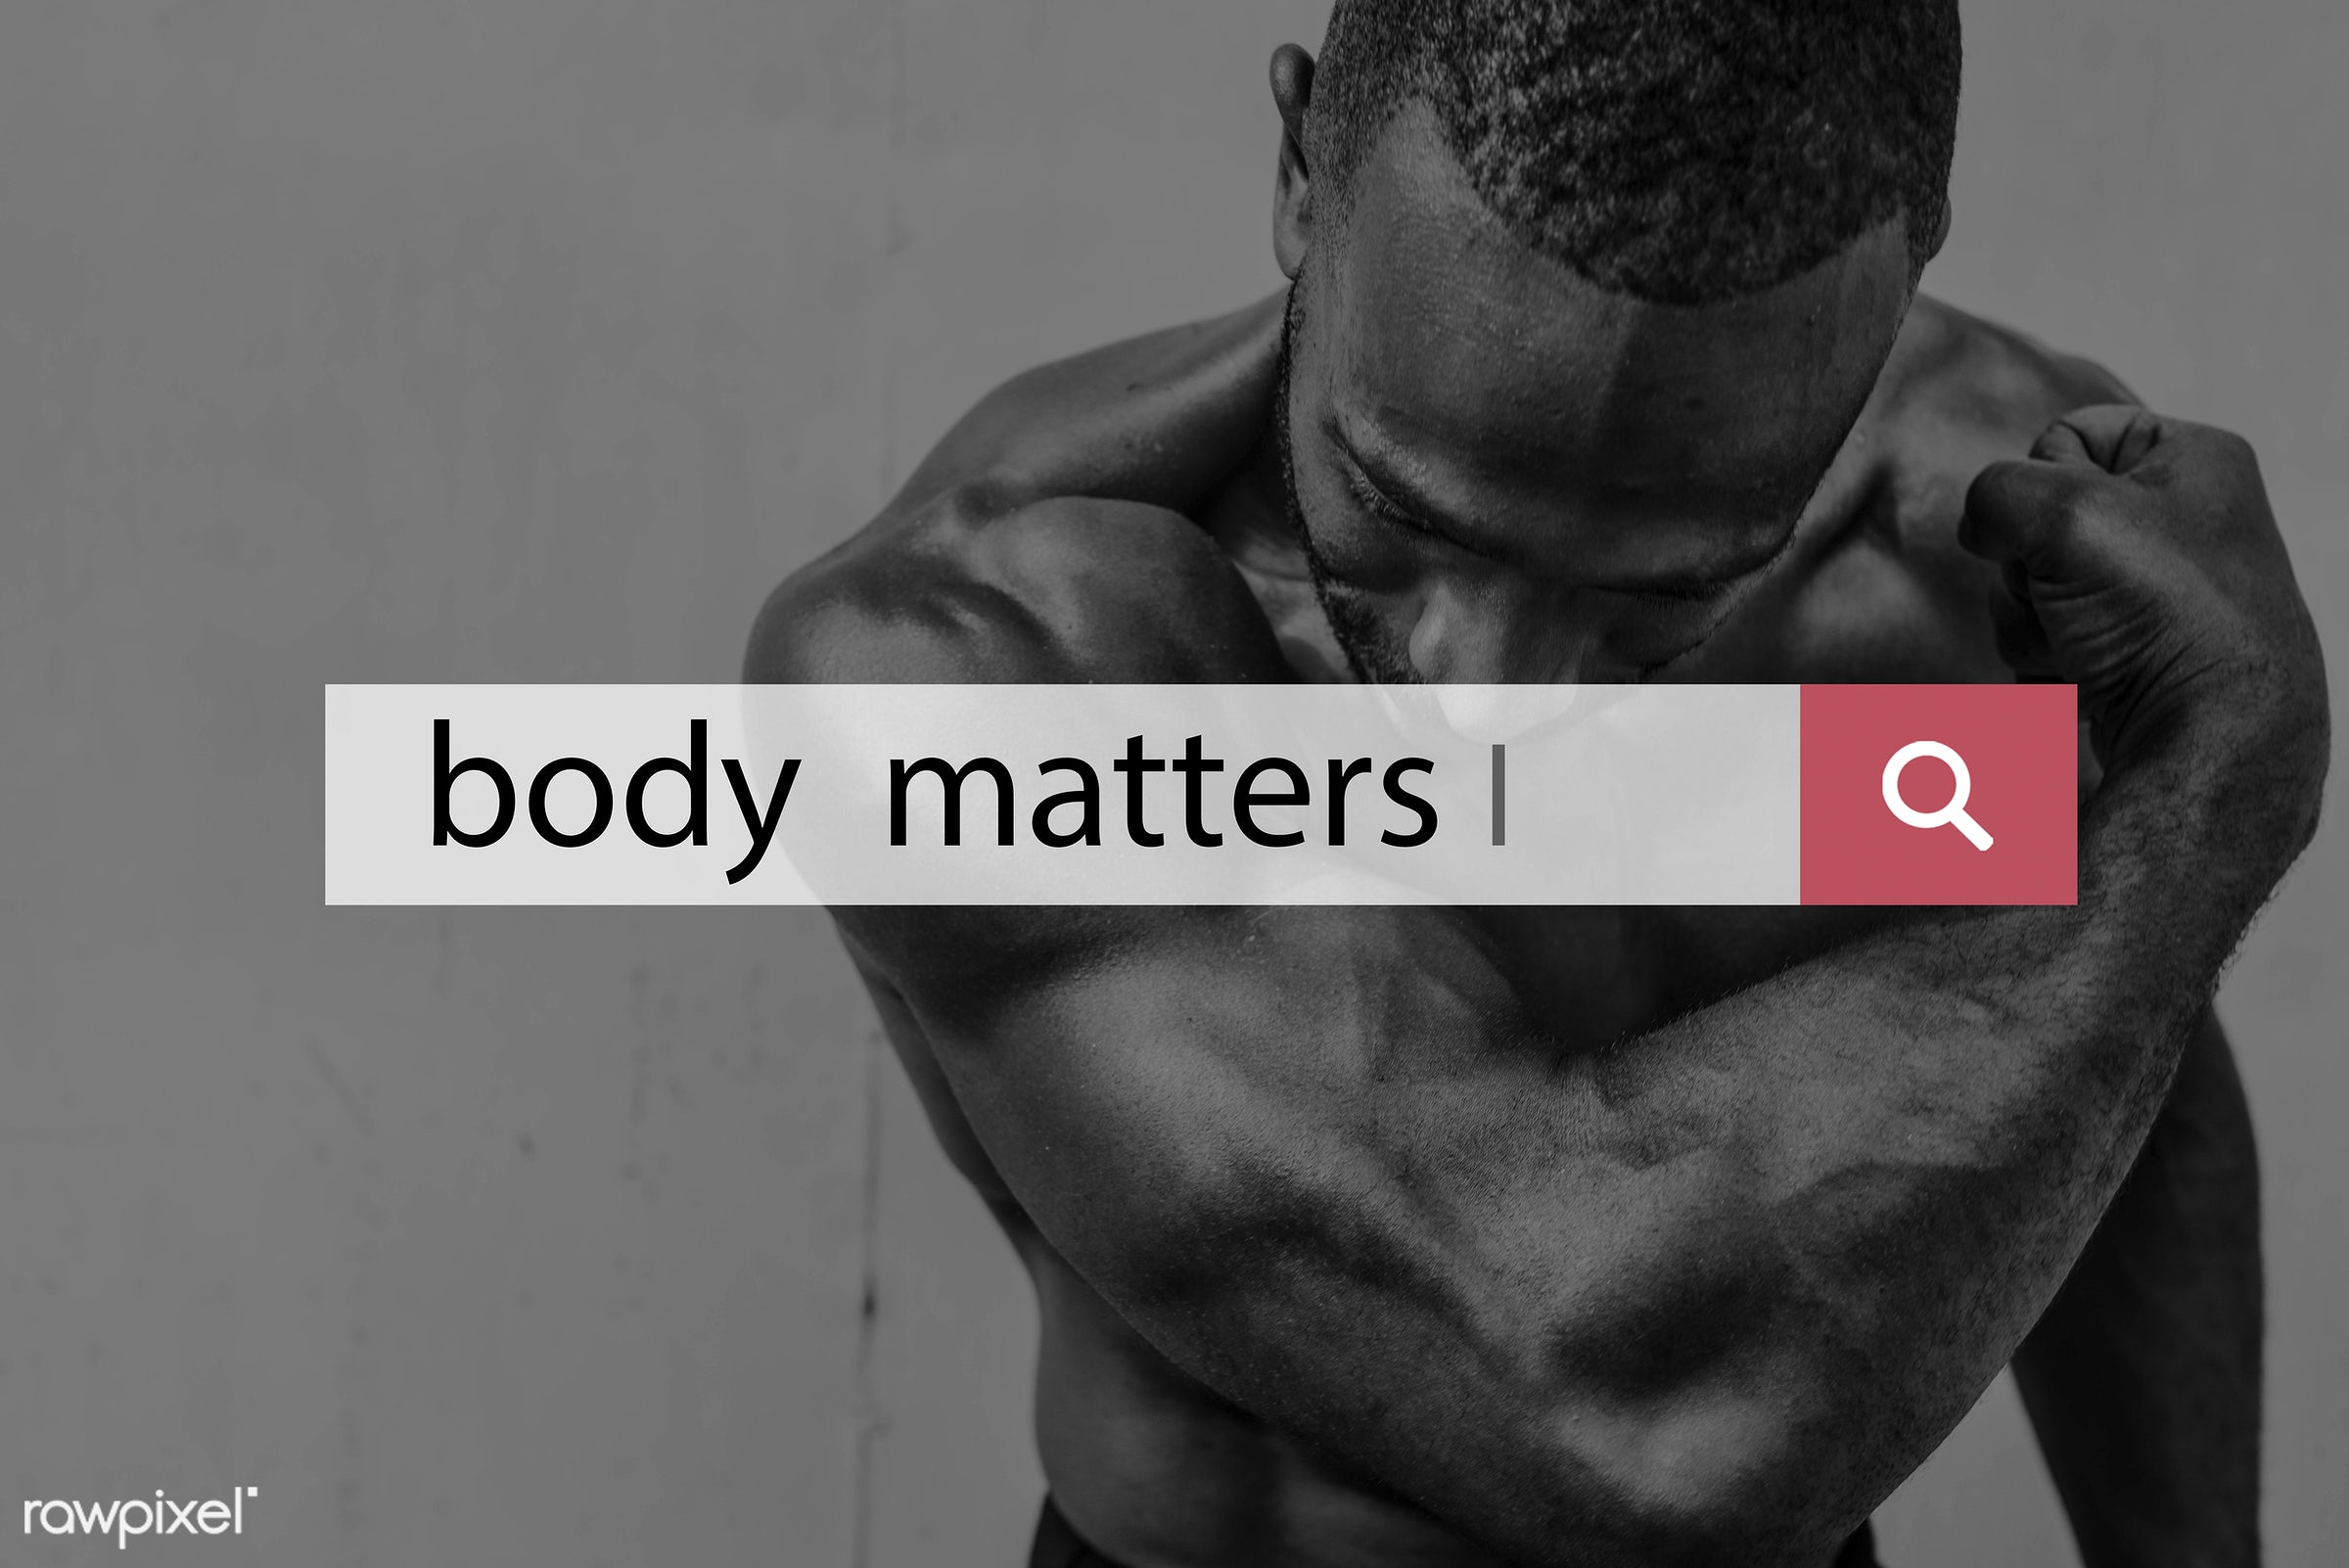 muscle, abs, adult, african descent, arms, be strong, biceps, body, body challenge, body matters, bodybuilder, build a body...